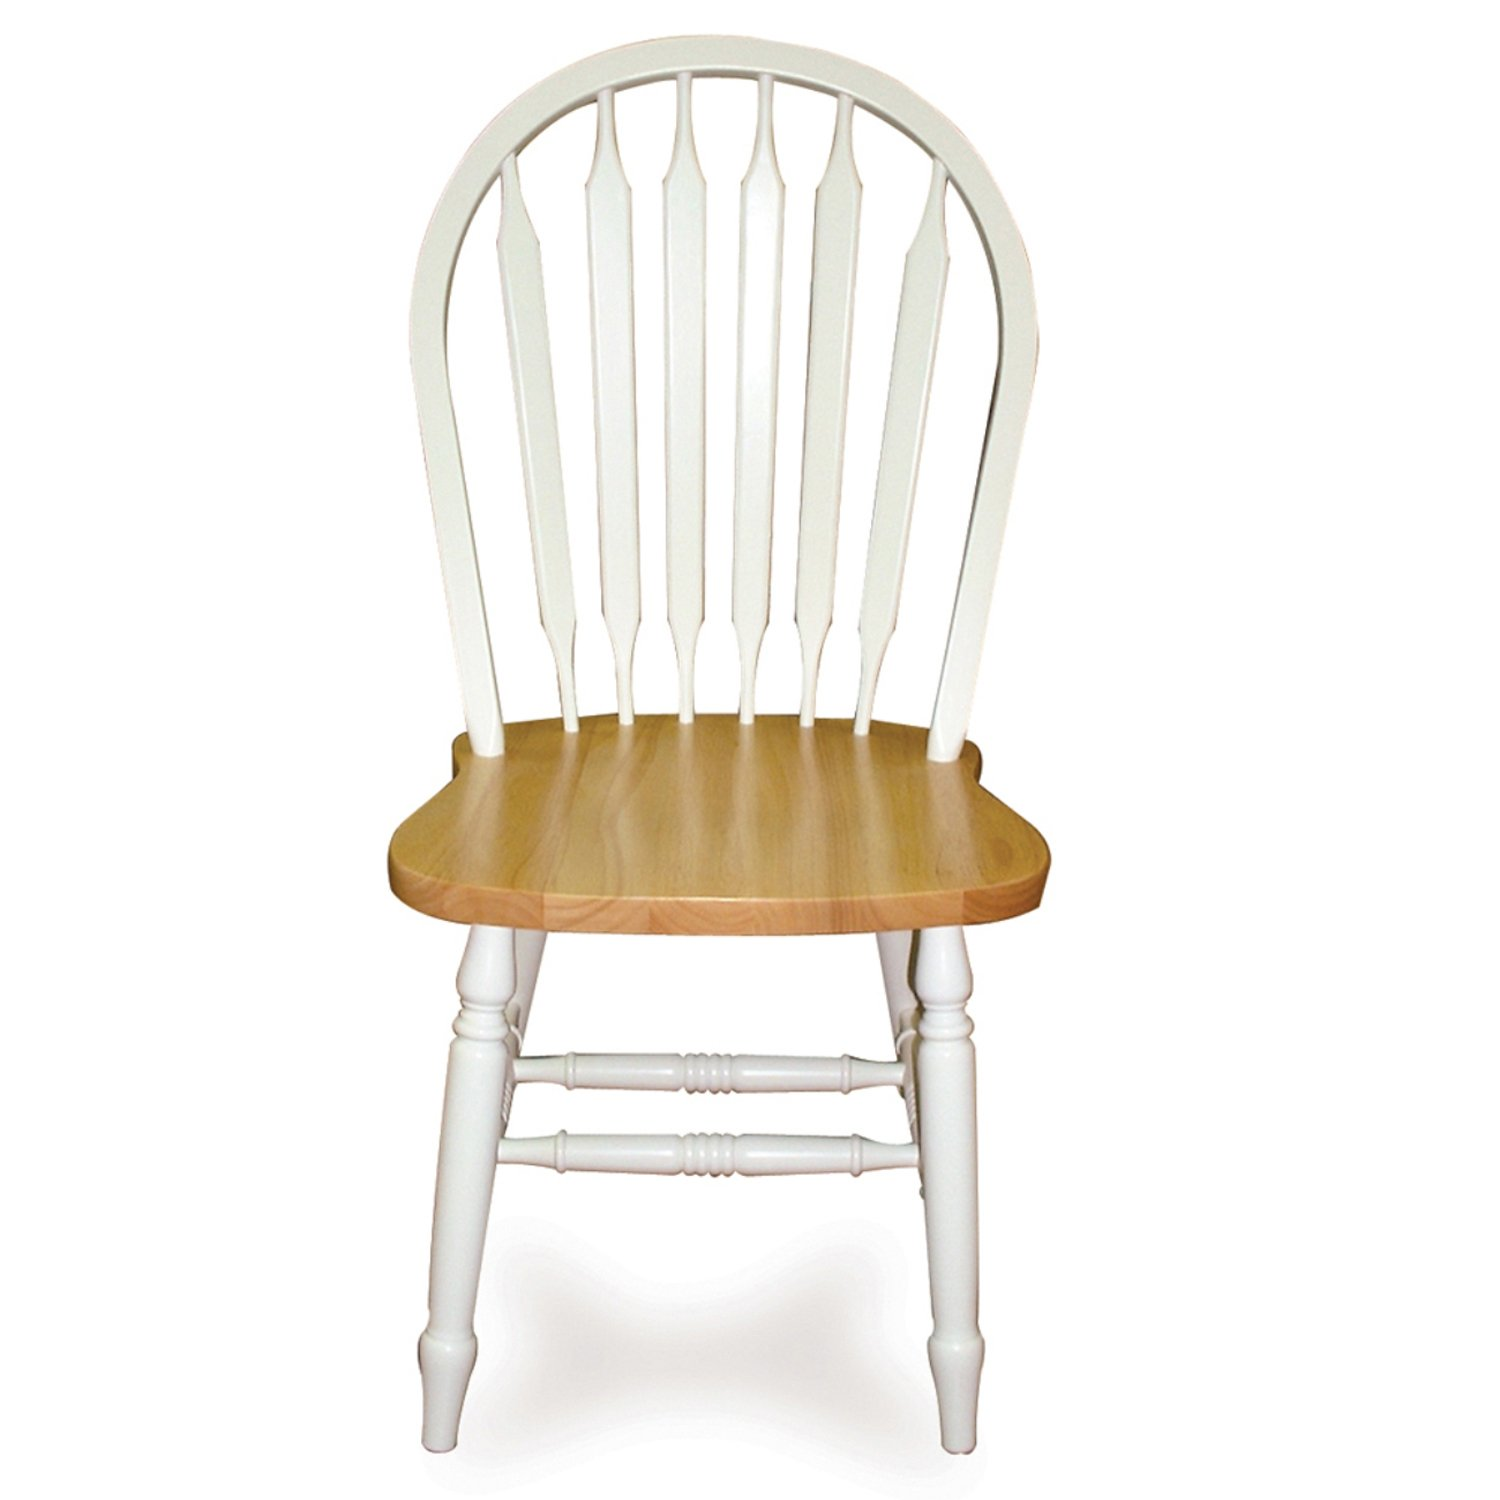 International Concepts C02-213 Windsor 38'' High Arrowback Chair White/Natural